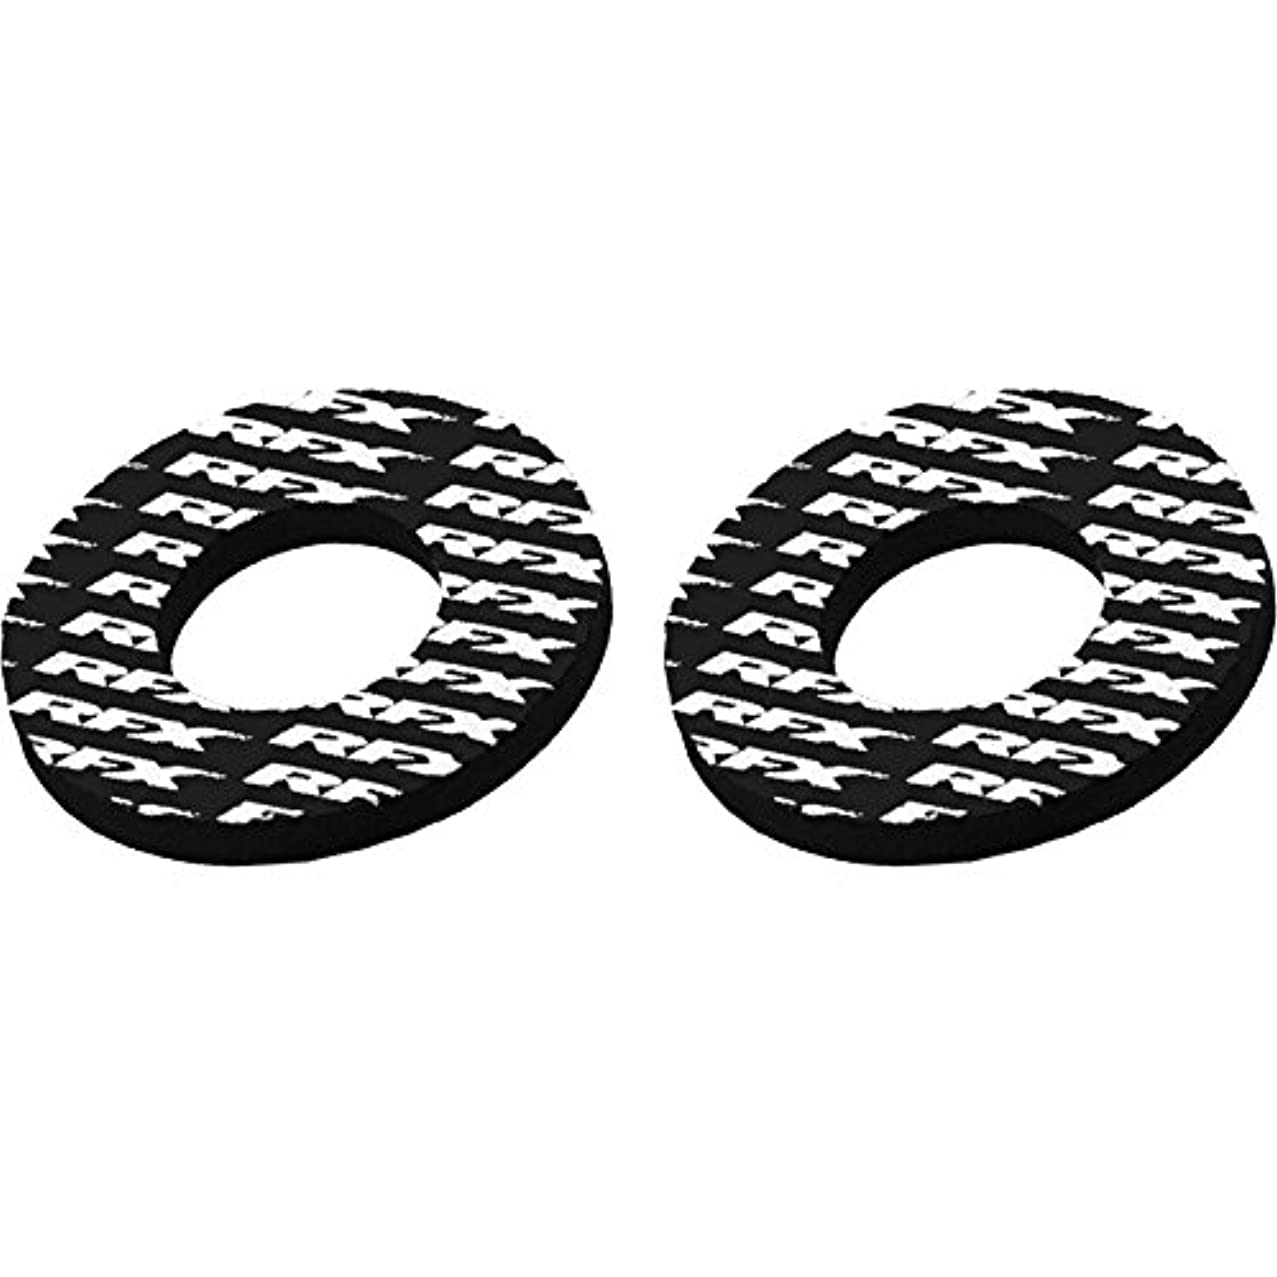 RFX FXHG 90000 00BK Grip Donuts Pair, Black